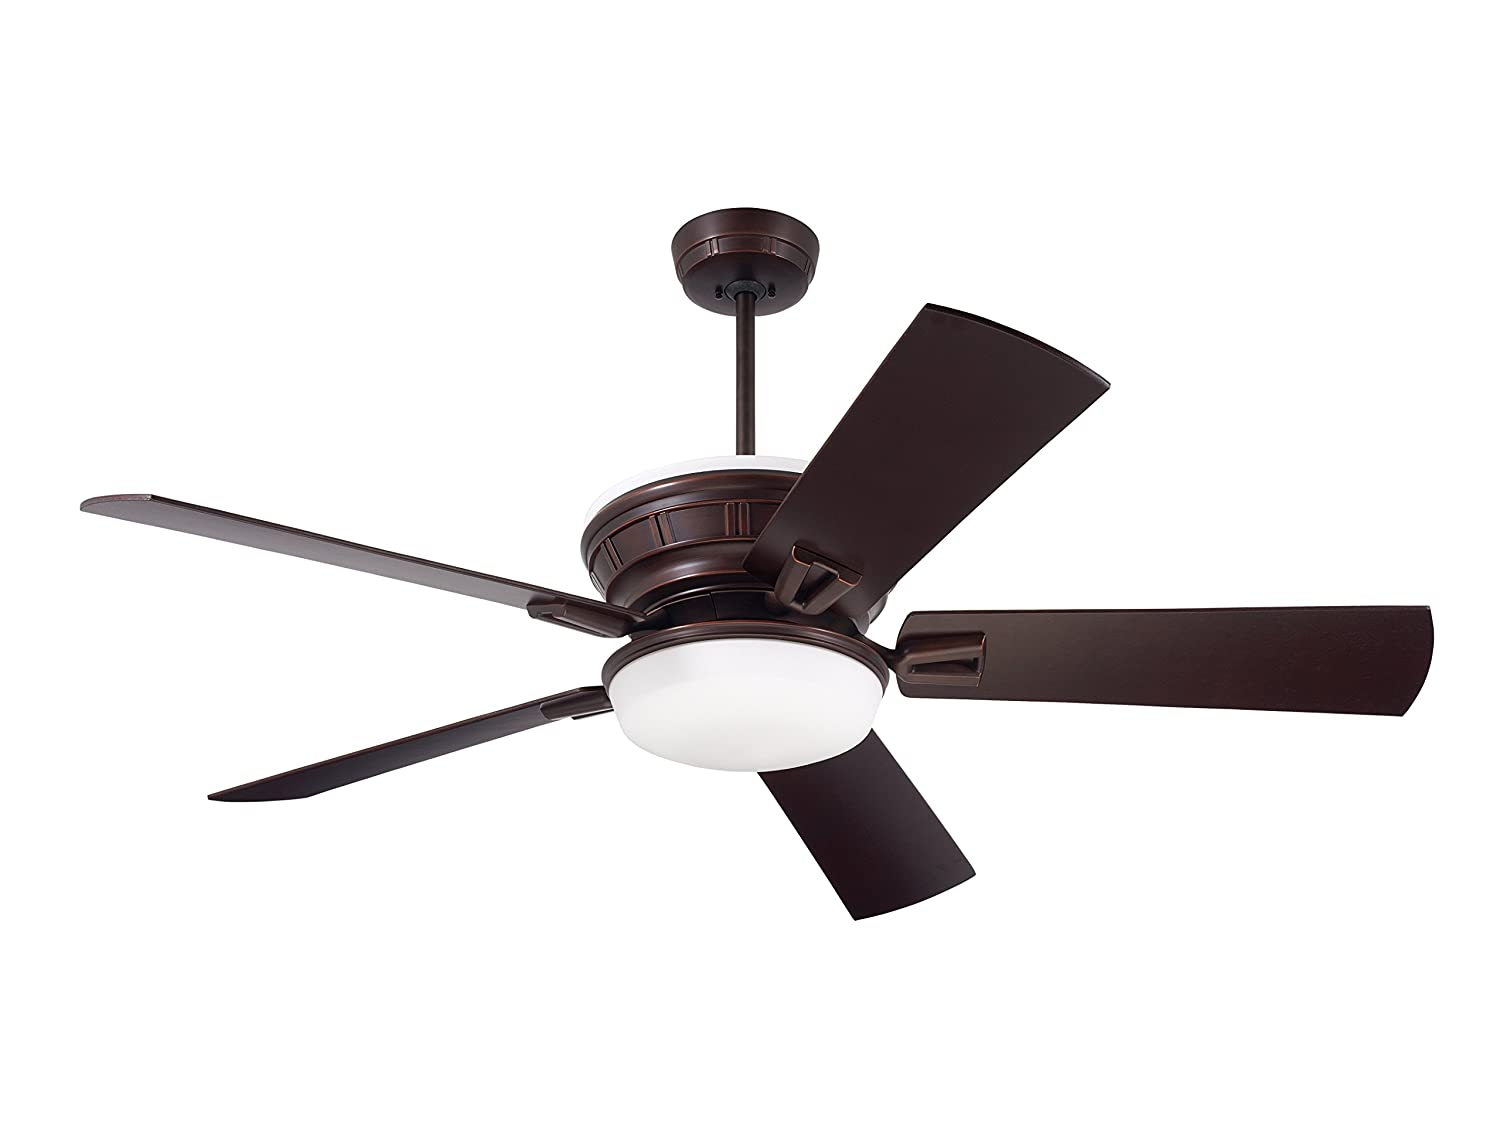 Emerson ceiling fans cf965vnb portland eco ceiling fan with light wall control and 54 blades venetian bronze finish emerson ceiling fans cf965vnb portland eco ceiling fan with light wall control and 54 blades venetian bronze finish amazon aloadofball Gallery